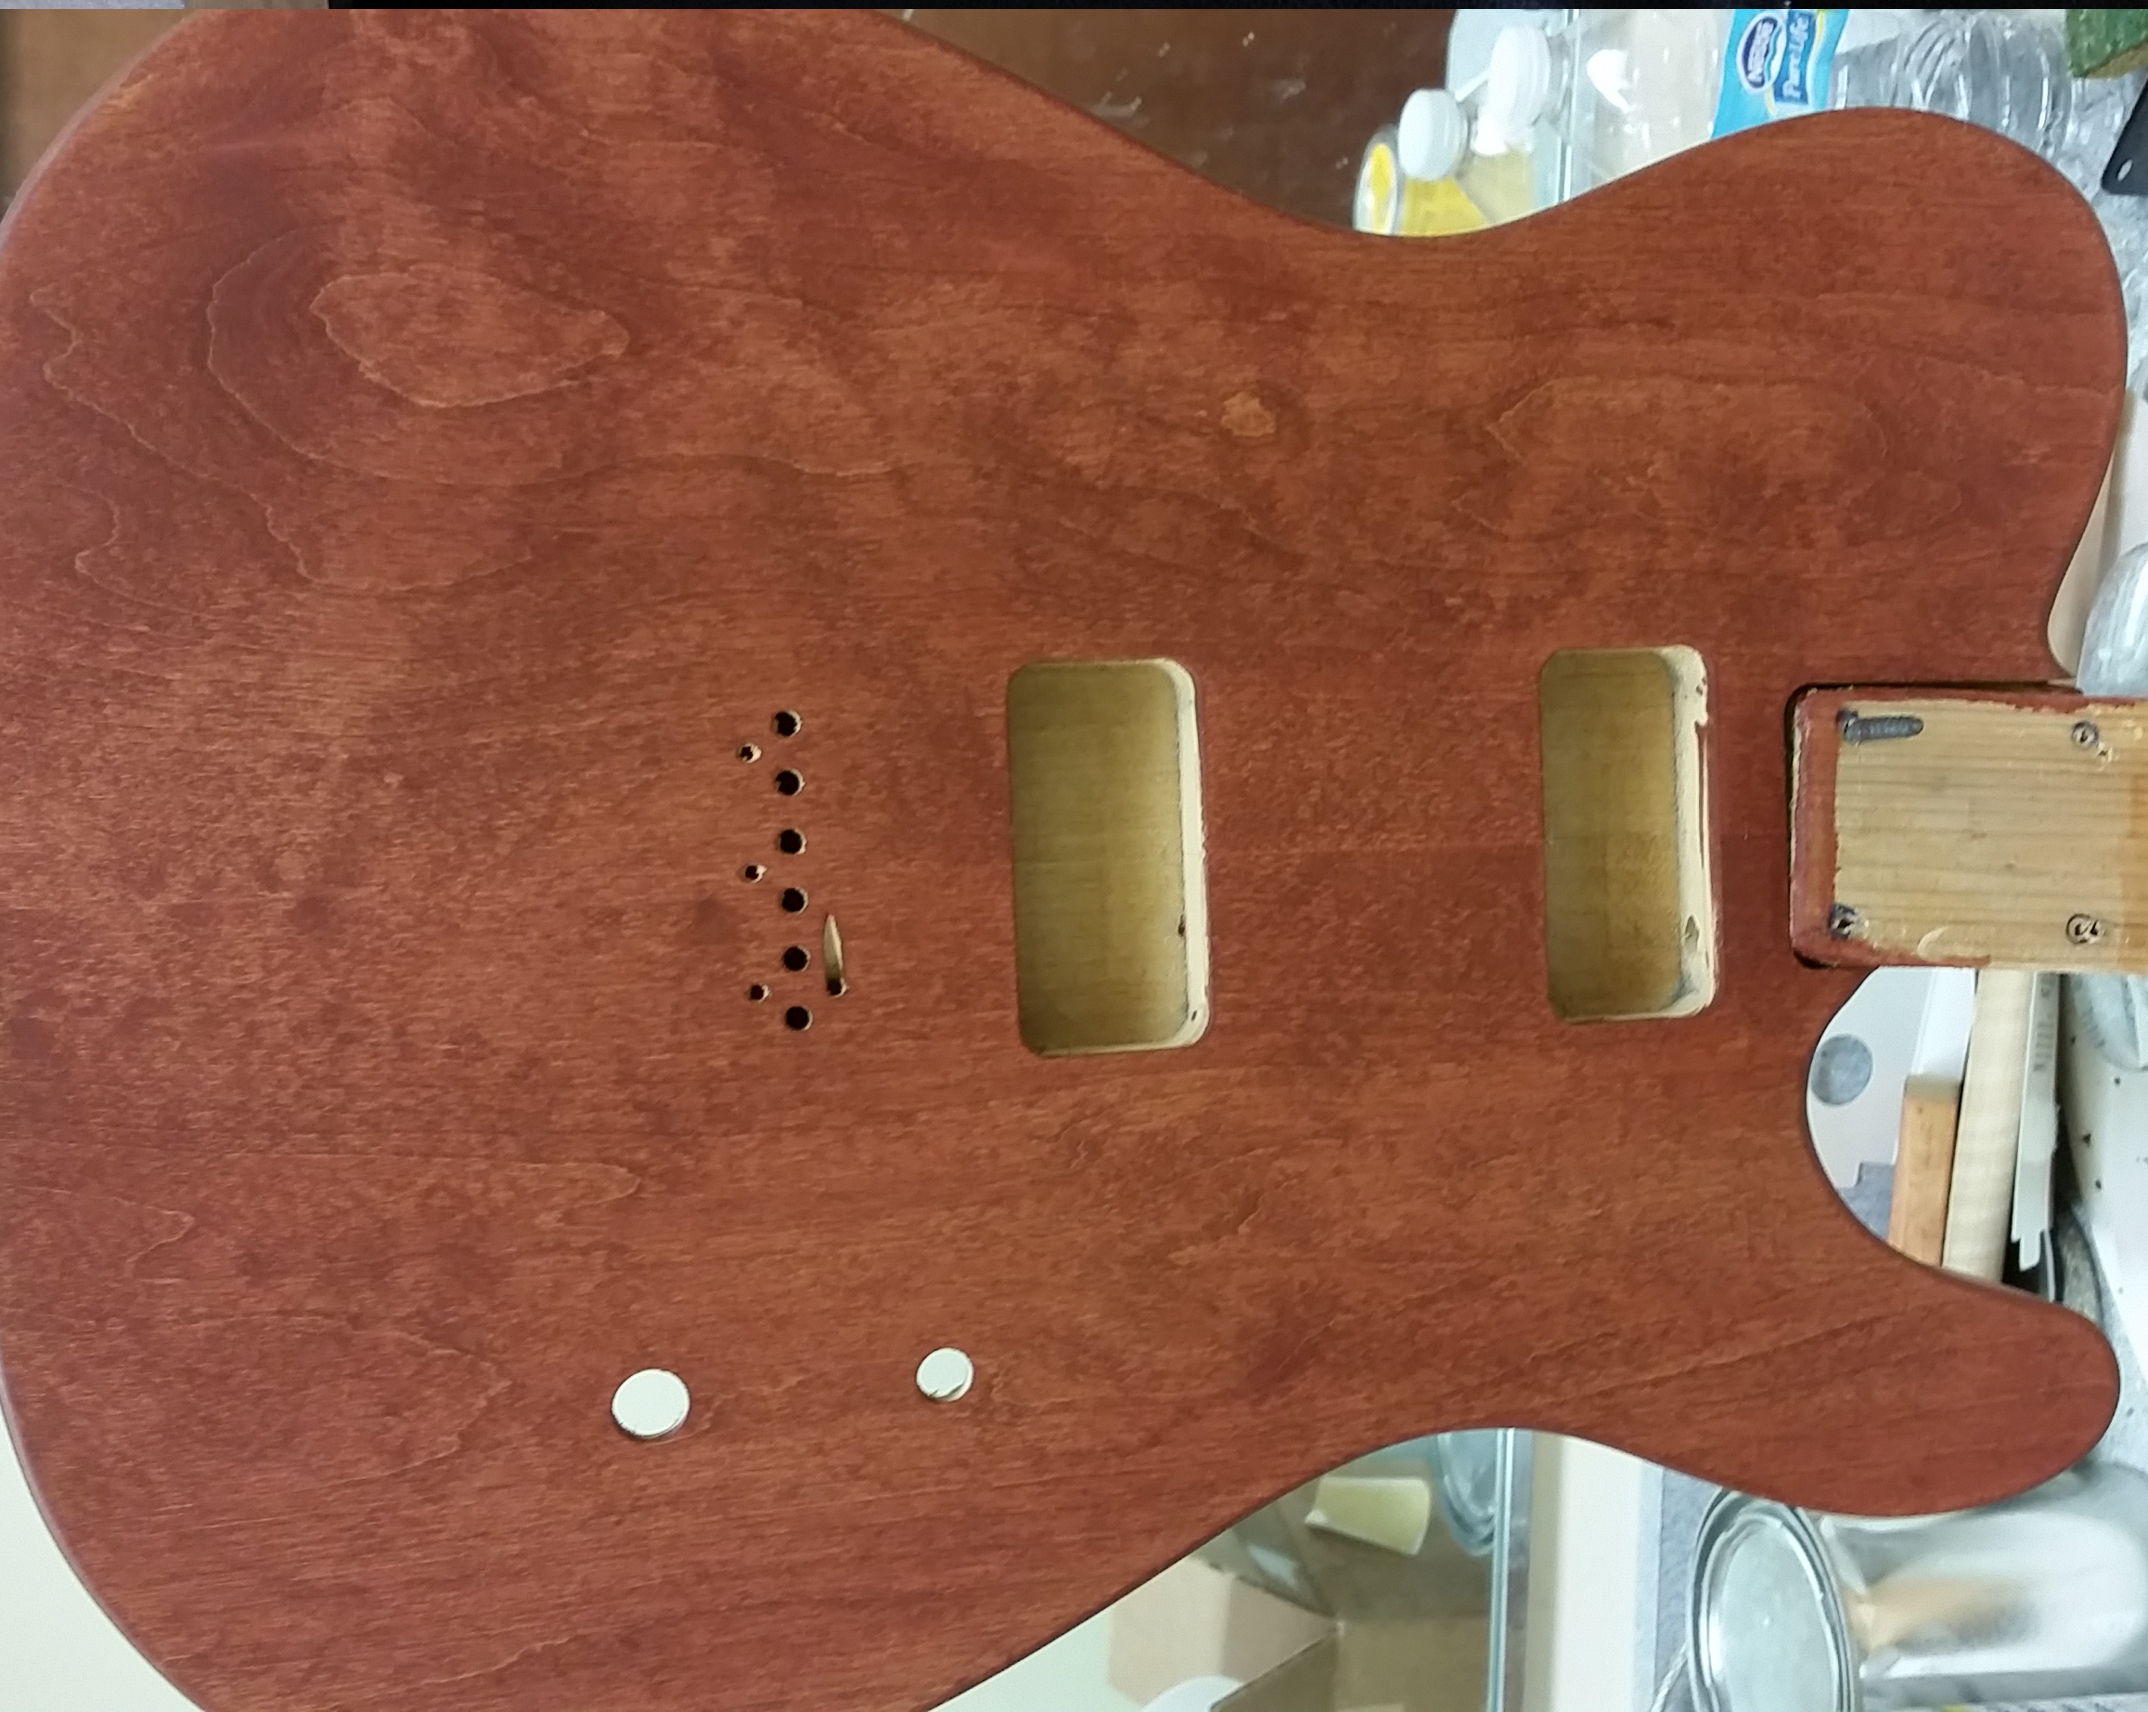 Fender Telecaster Cabronita body by Warmoth, view of front, one coat of red stain, wet